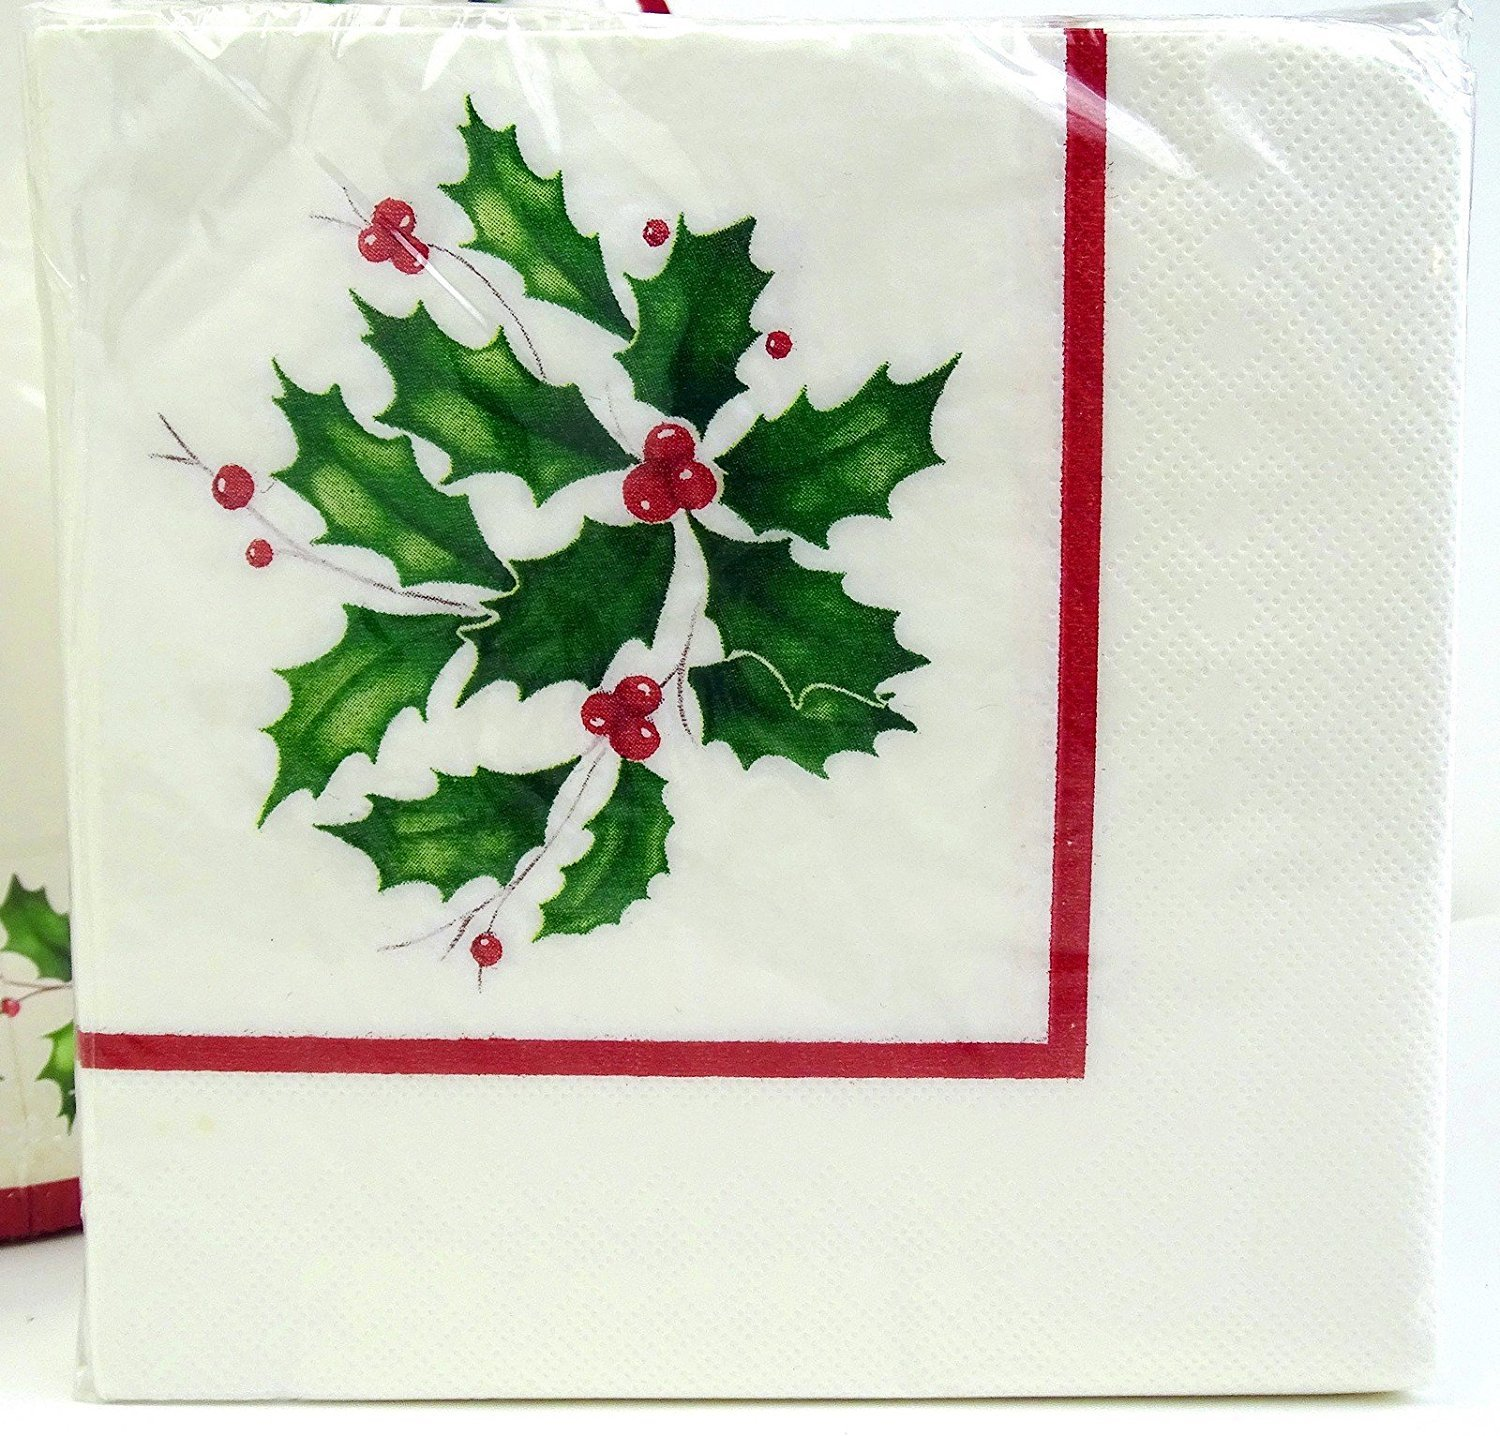 Lenox Holly Paper Beverage Cocktail Napkins, 40 Ct, Christmas Holiday CR Gibson